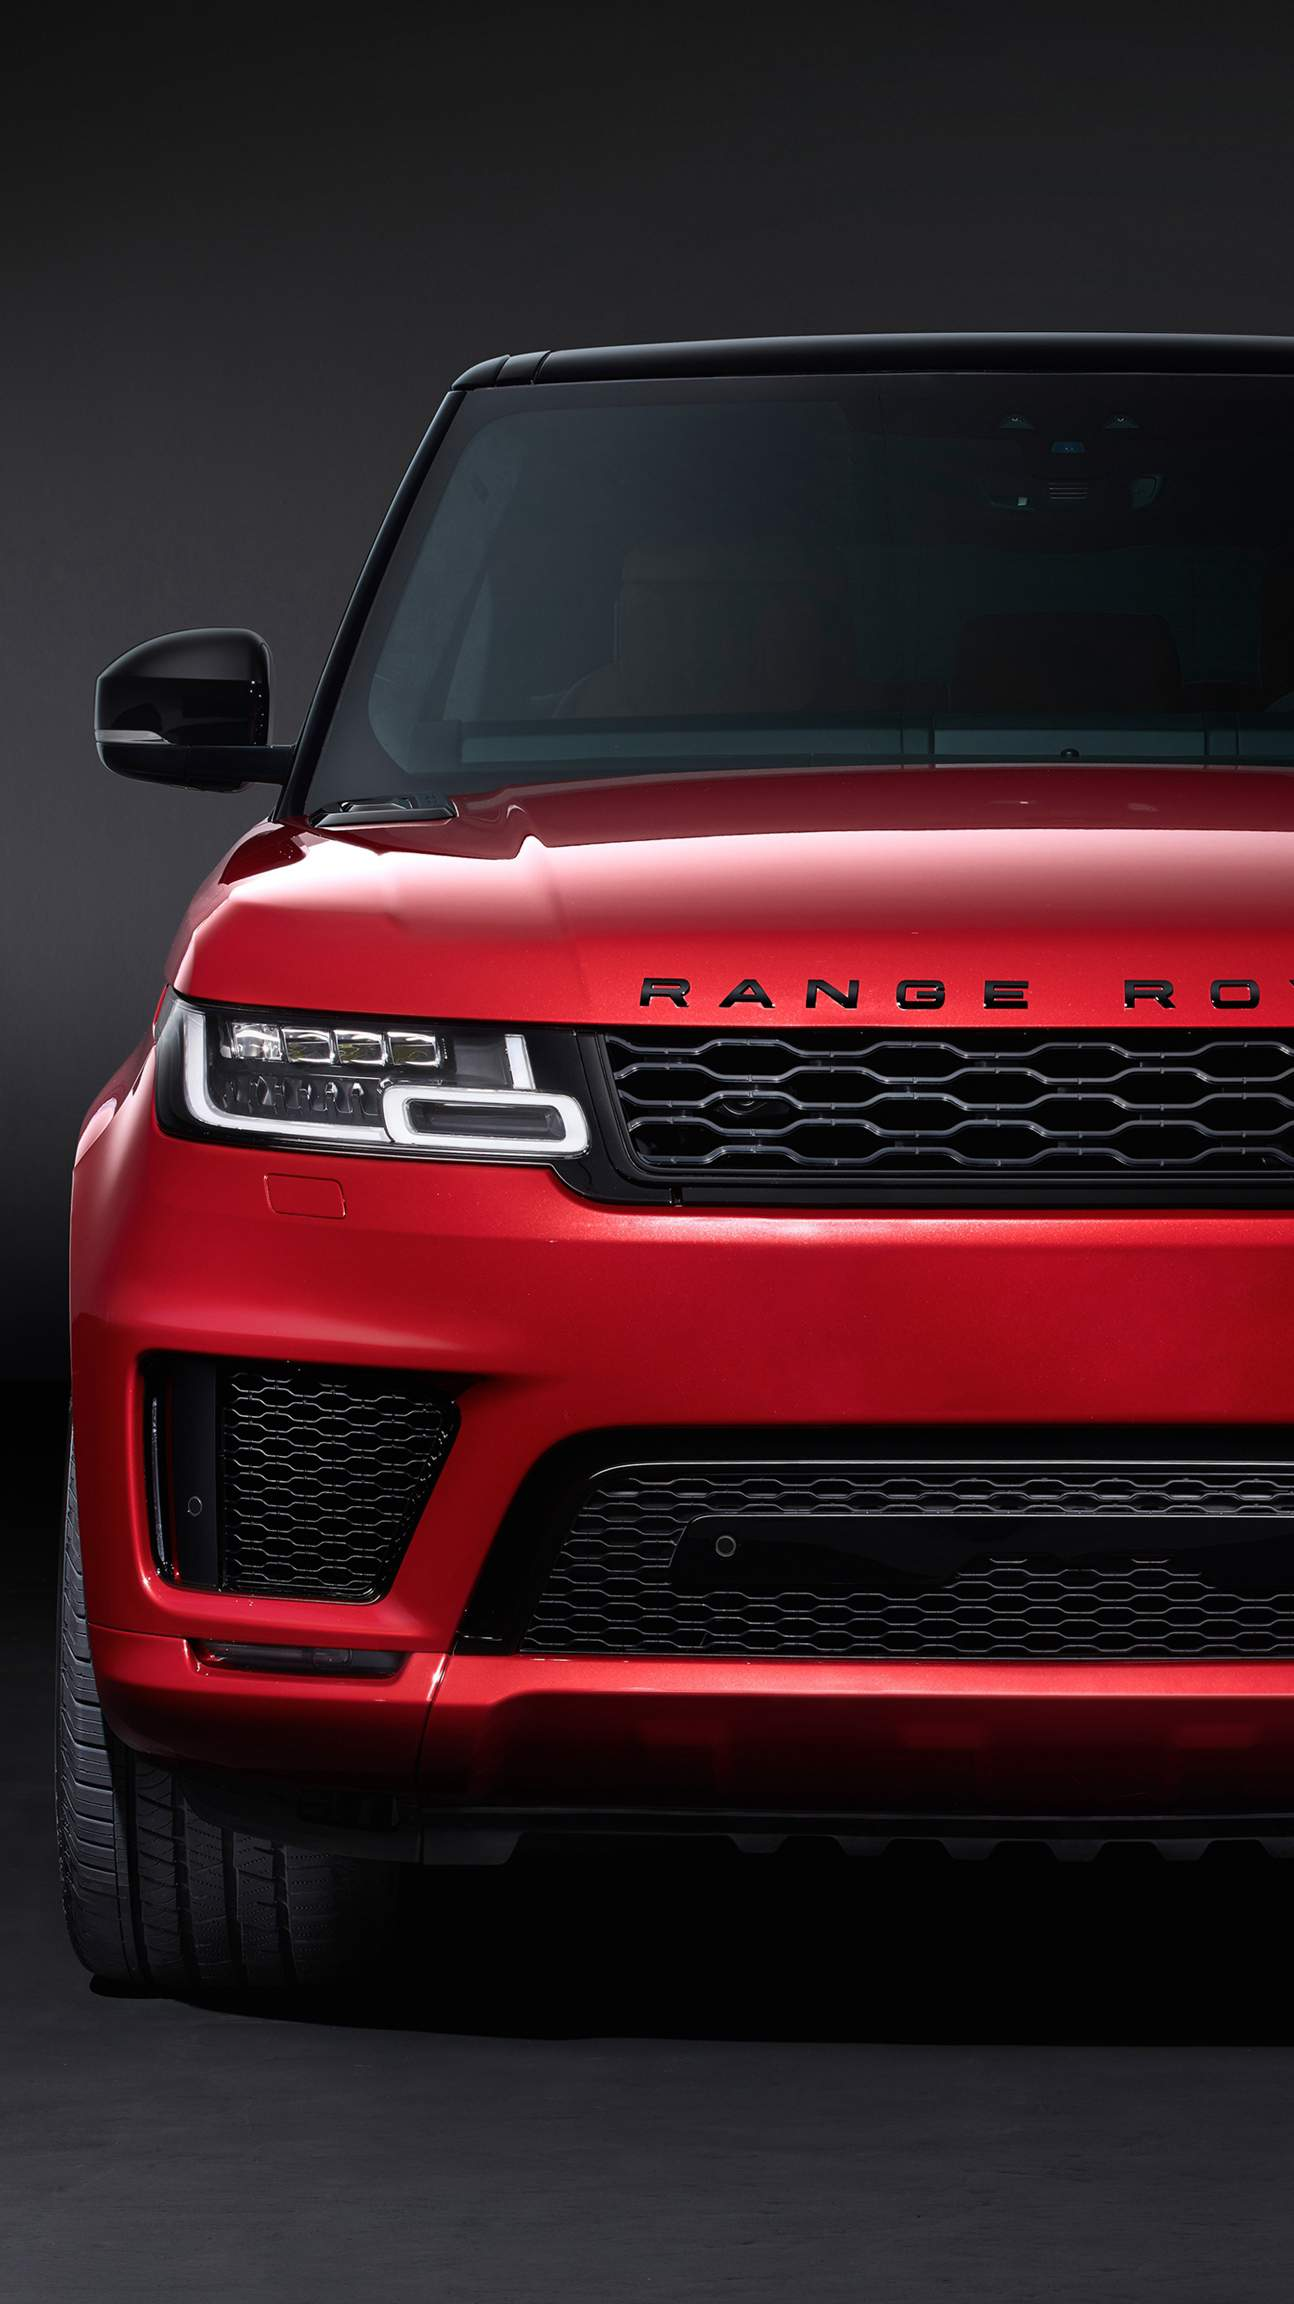 Tacoma Trd Pro >> Red Range Rover Sport Autobiography iPhone Wallpaper - iPhone Wallpapers